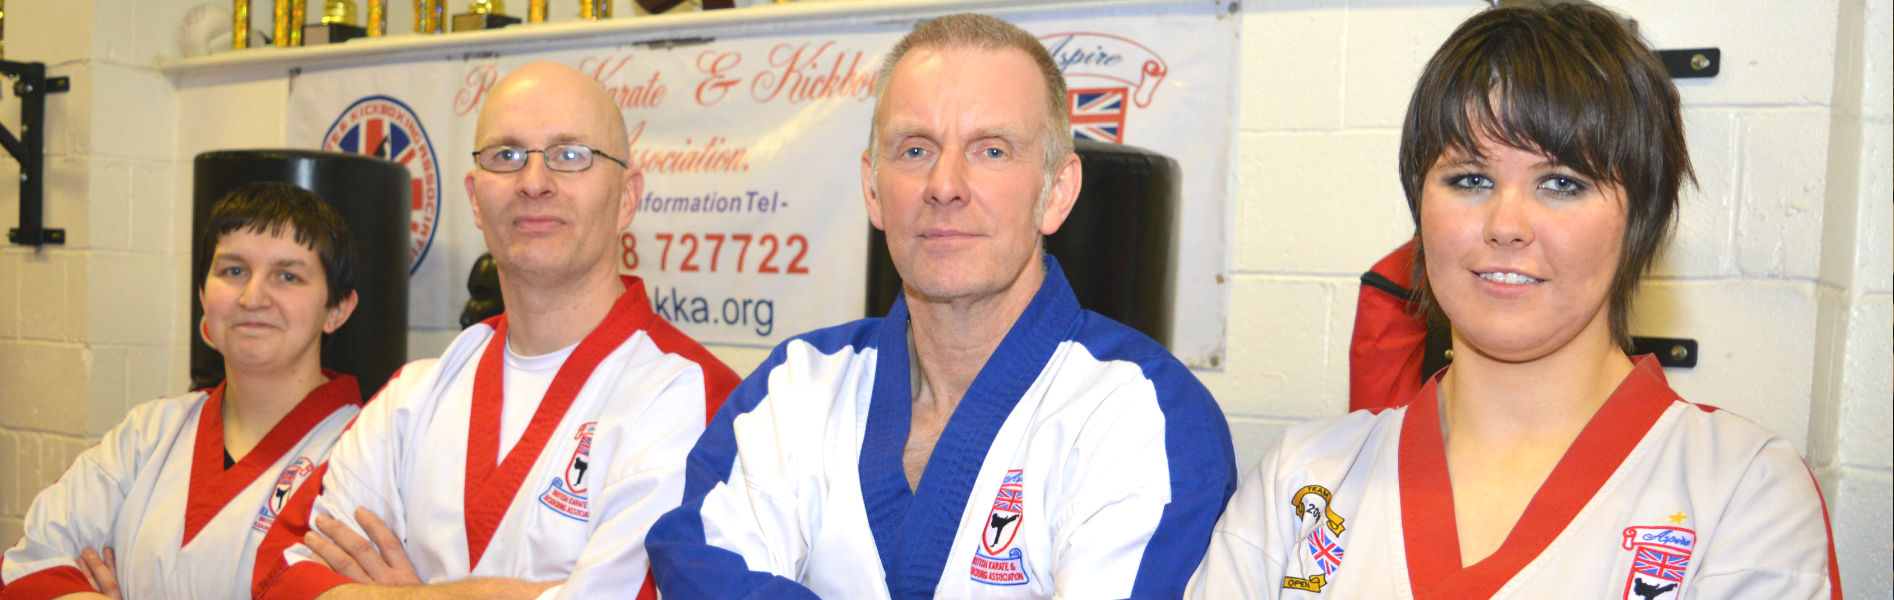 karate classes in chesterfield - group